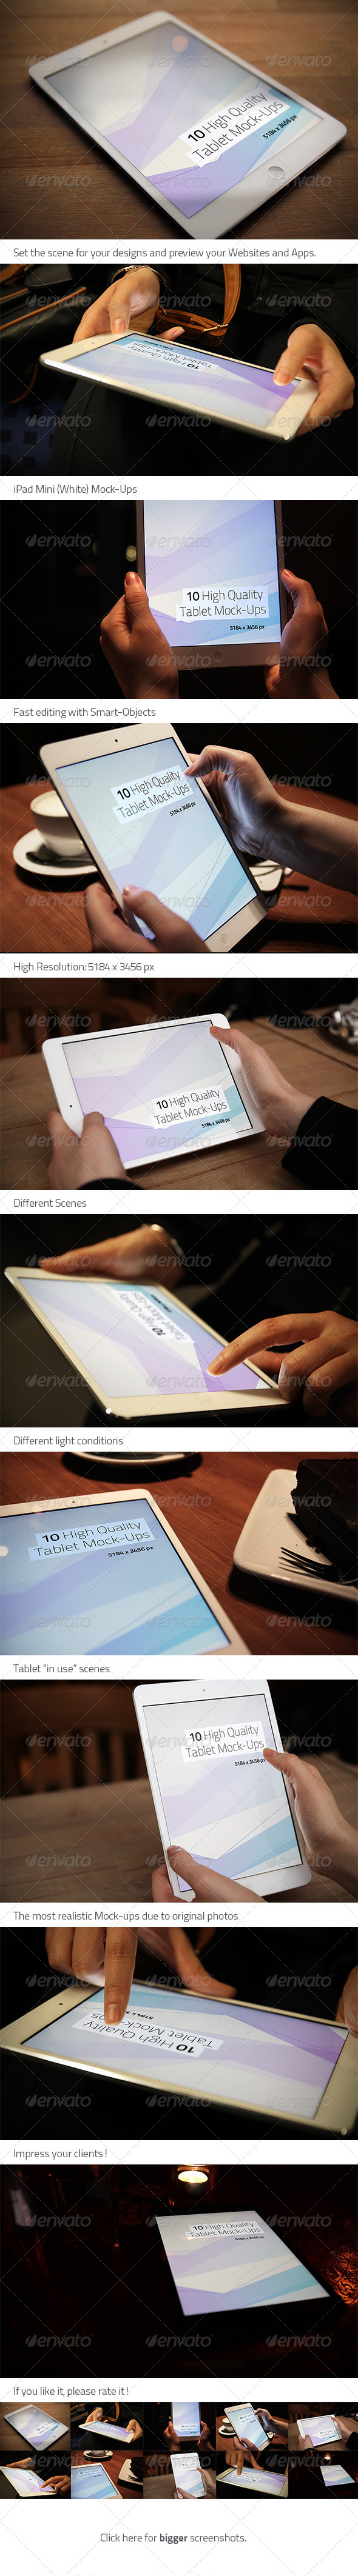 GraphicRiver 10 High Quality Tablet Mock-Ups 4476731